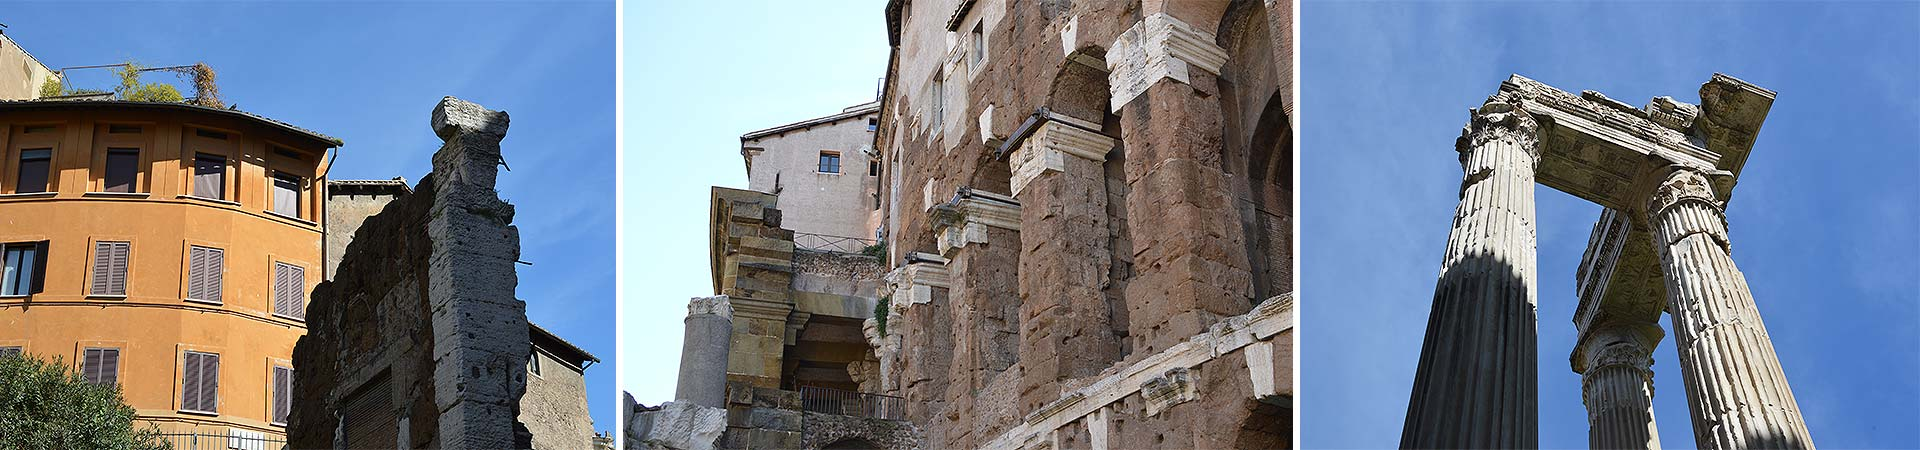 walking tour of roman ghetto